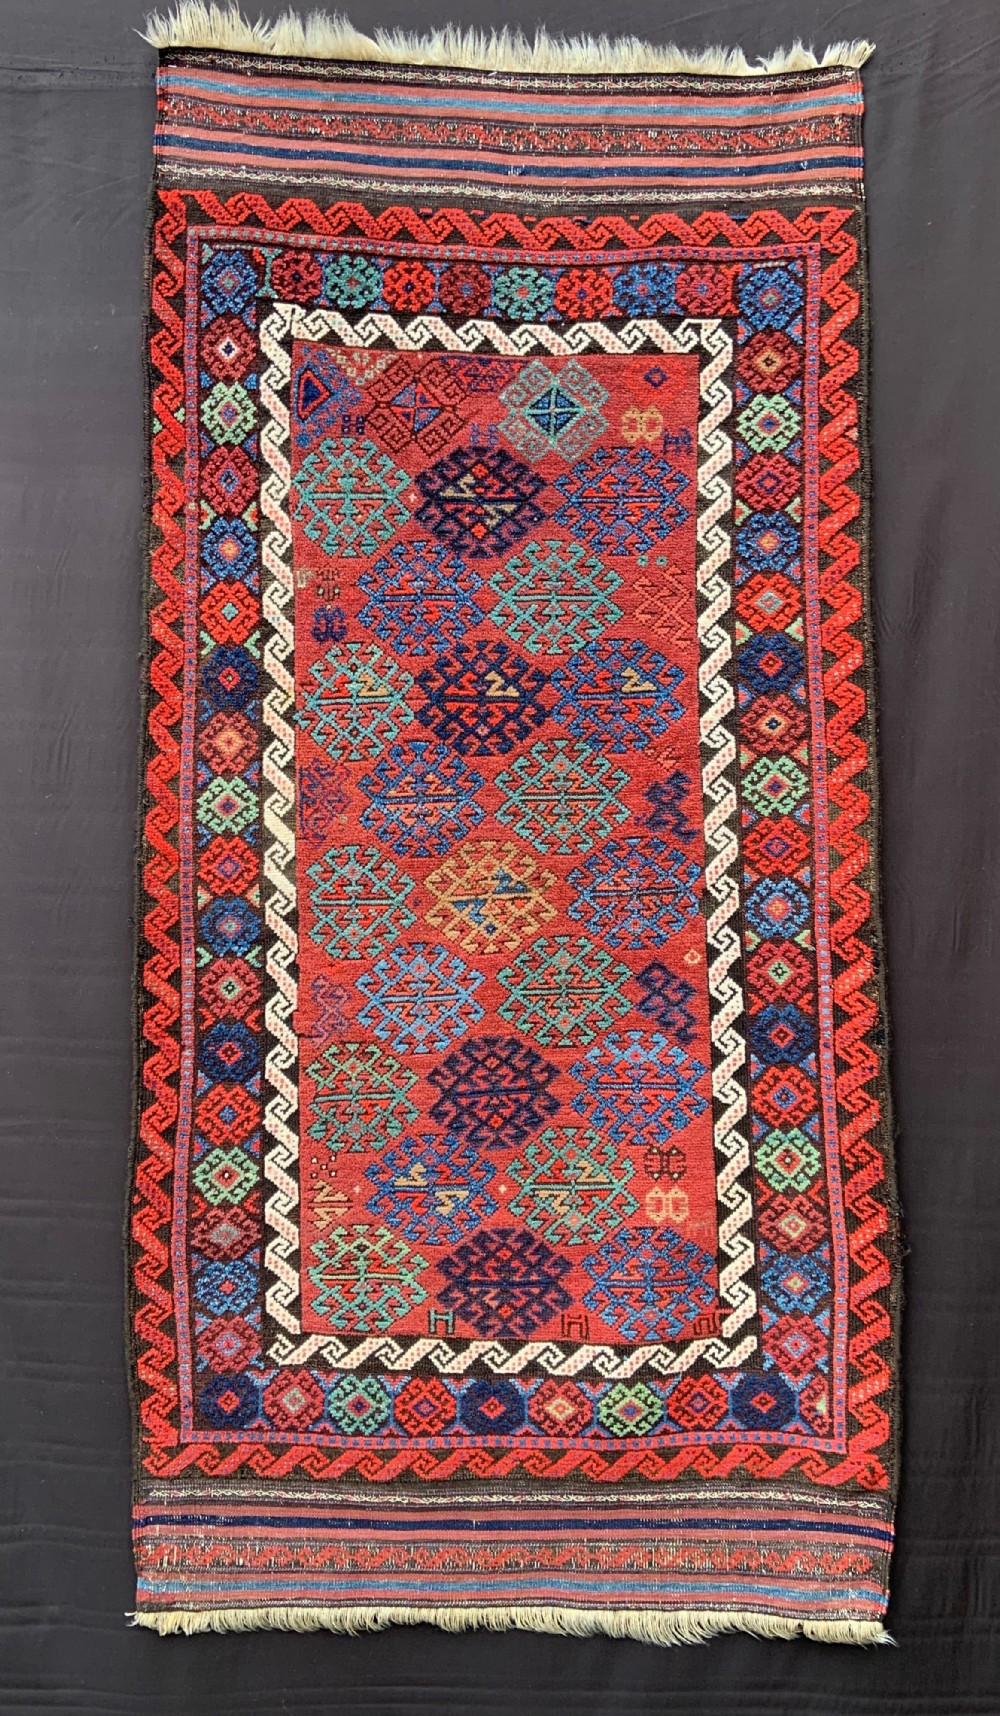 antique baluch rug bahluli subtribe sistan province southeast persia